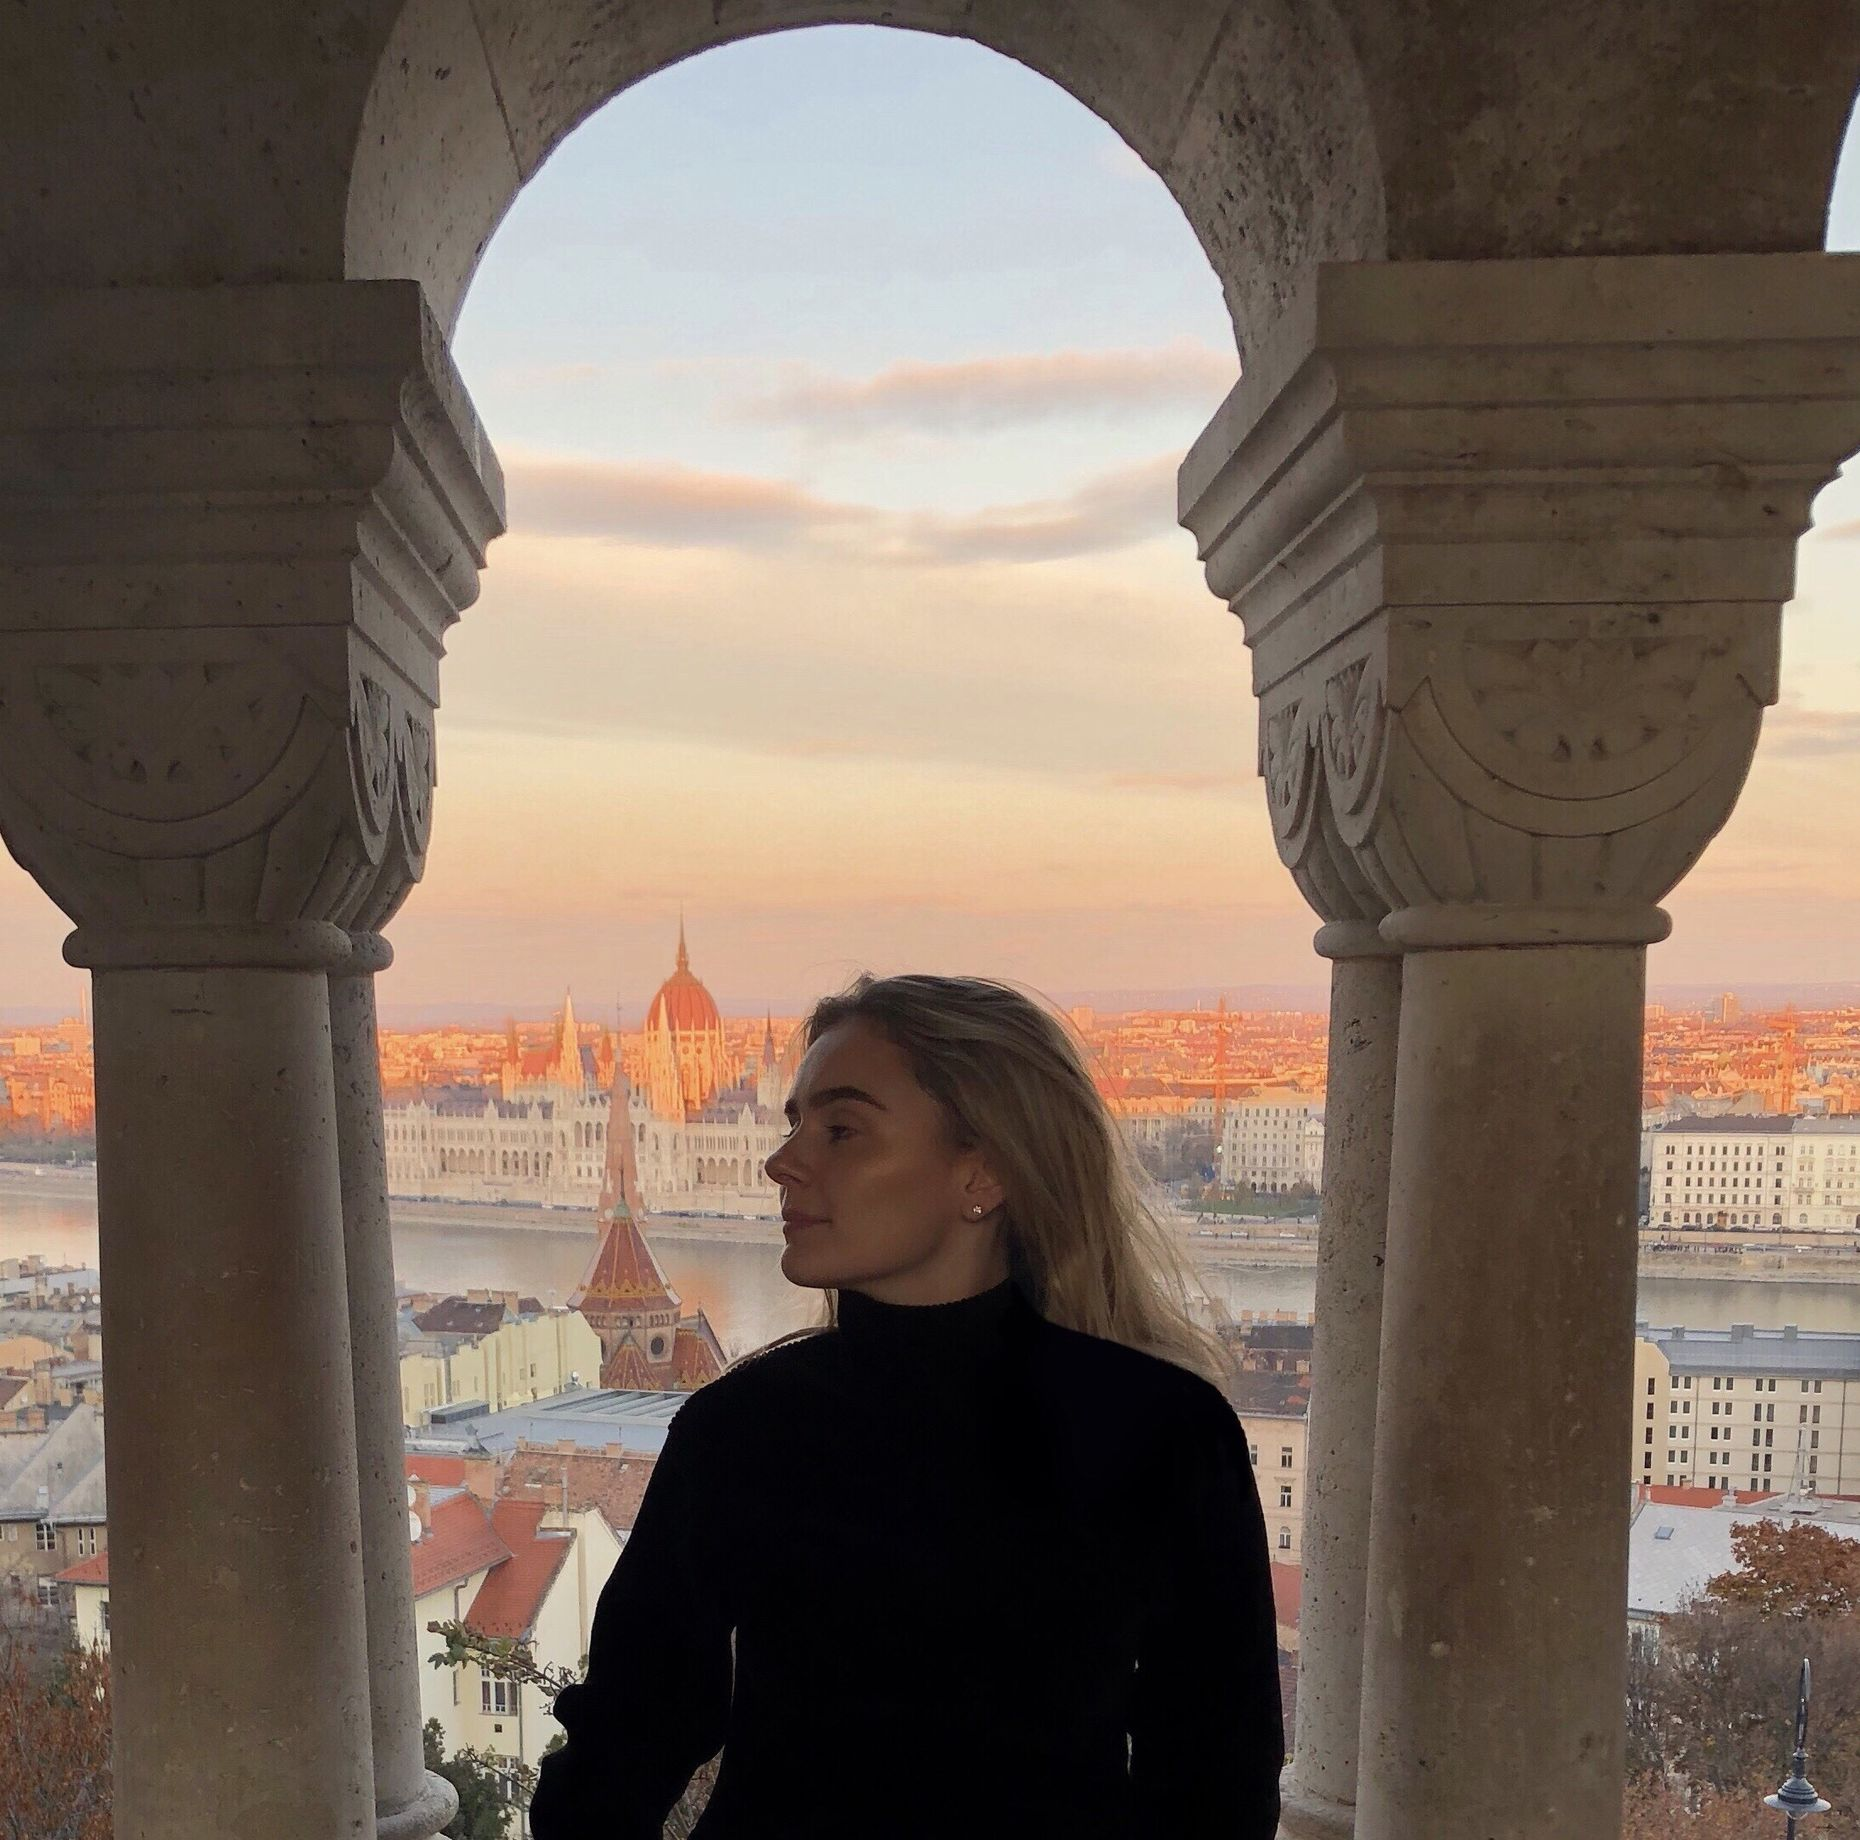 A photo of Elisjana in front of an expansive view of a city.